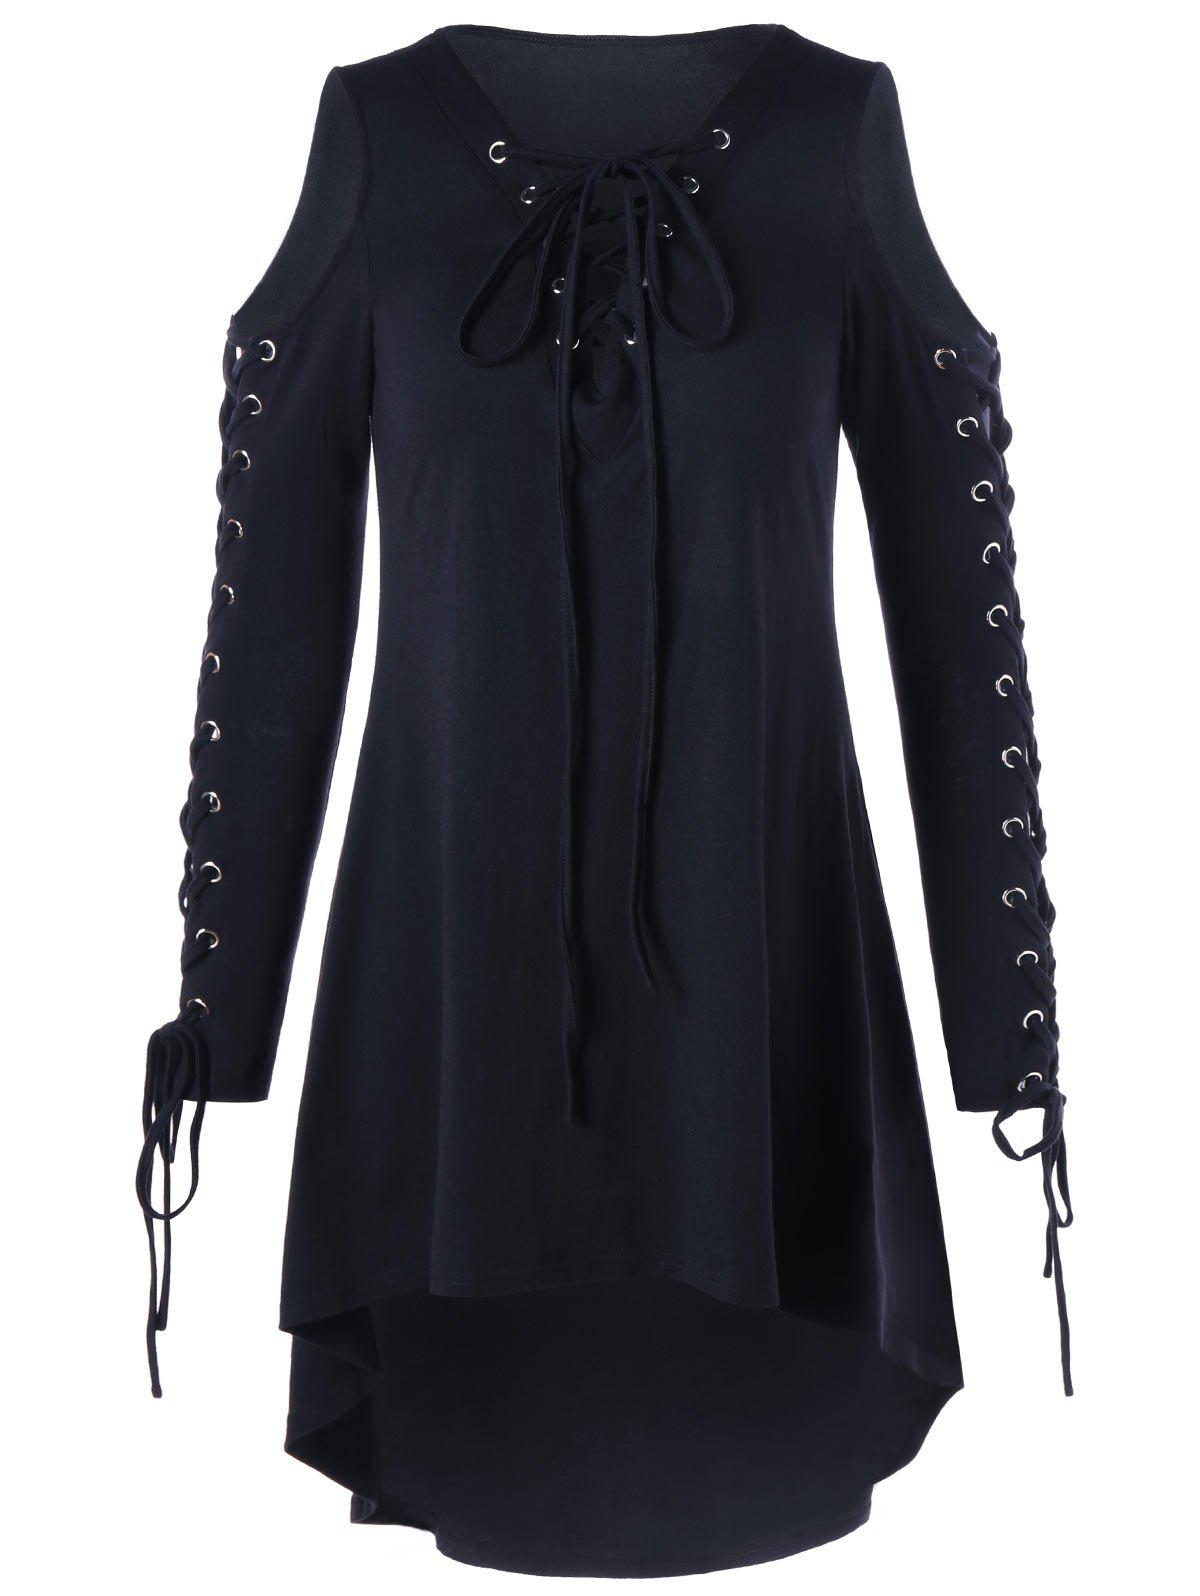 Plus Size Cold Shoulder Lace Up DressWOMEN<br><br>Size: 4XL; Color: BLACK; Style: Brief; Material: Cotton,Spandex; Silhouette: Asymmetrical; Dresses Length: Mid-Calf; Neckline: Plunging Neck; Sleeve Length: Long Sleeves; Pattern Type: Solid Color; With Belt: No; Season: Fall,Spring; Weight: 0.4000kg; Package Contents: 1 x Dress;